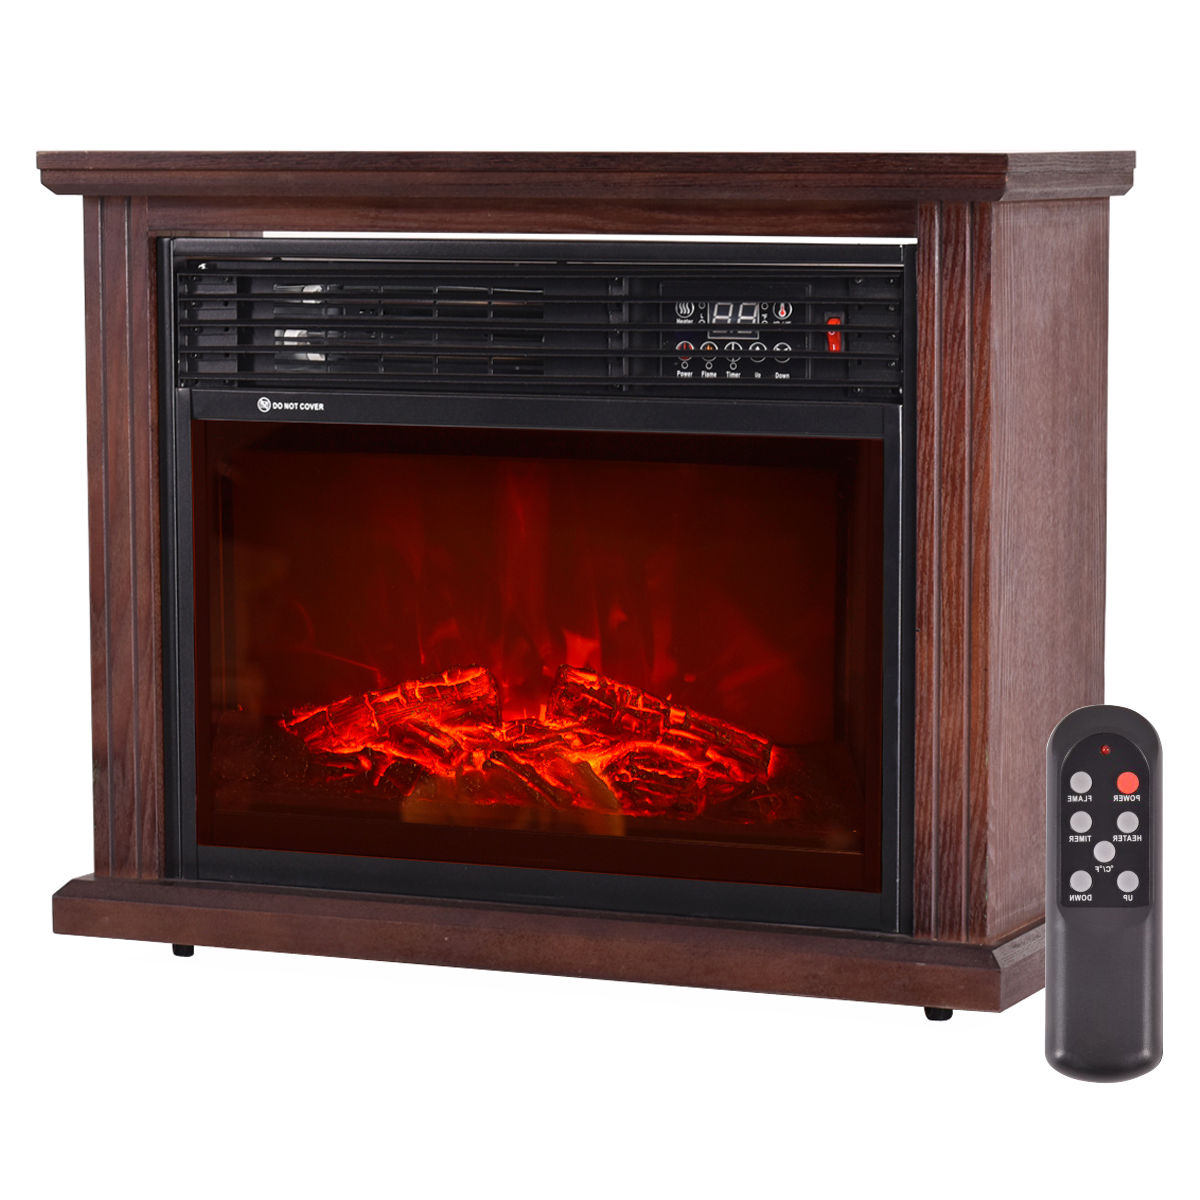 Ghp 3d Patented Flame Technology Free Standing Black Glass